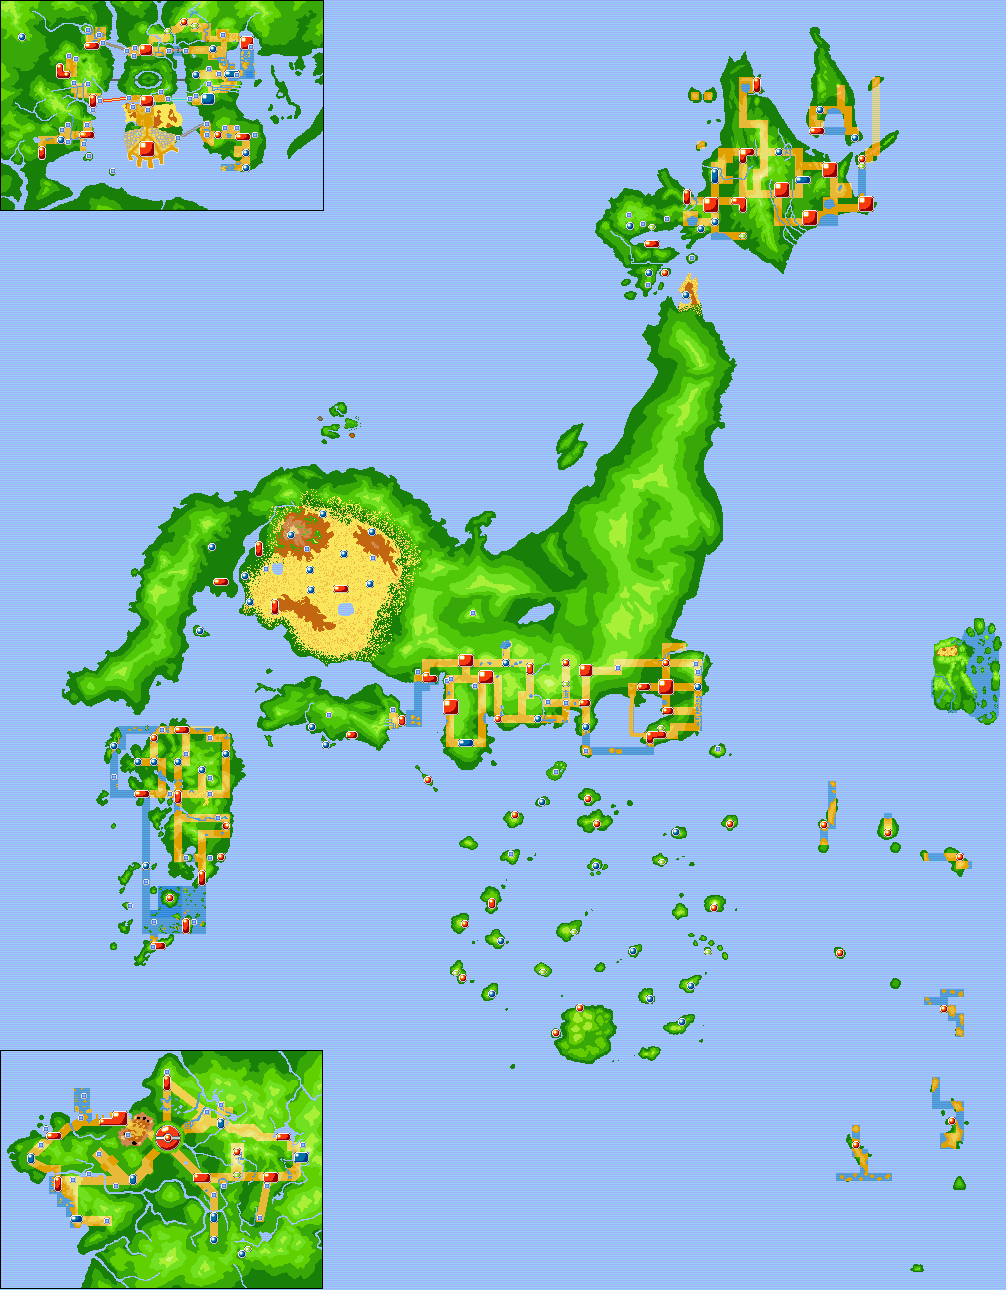 Pokemon World Gen III Map by CKnightsofni on DeviantArt